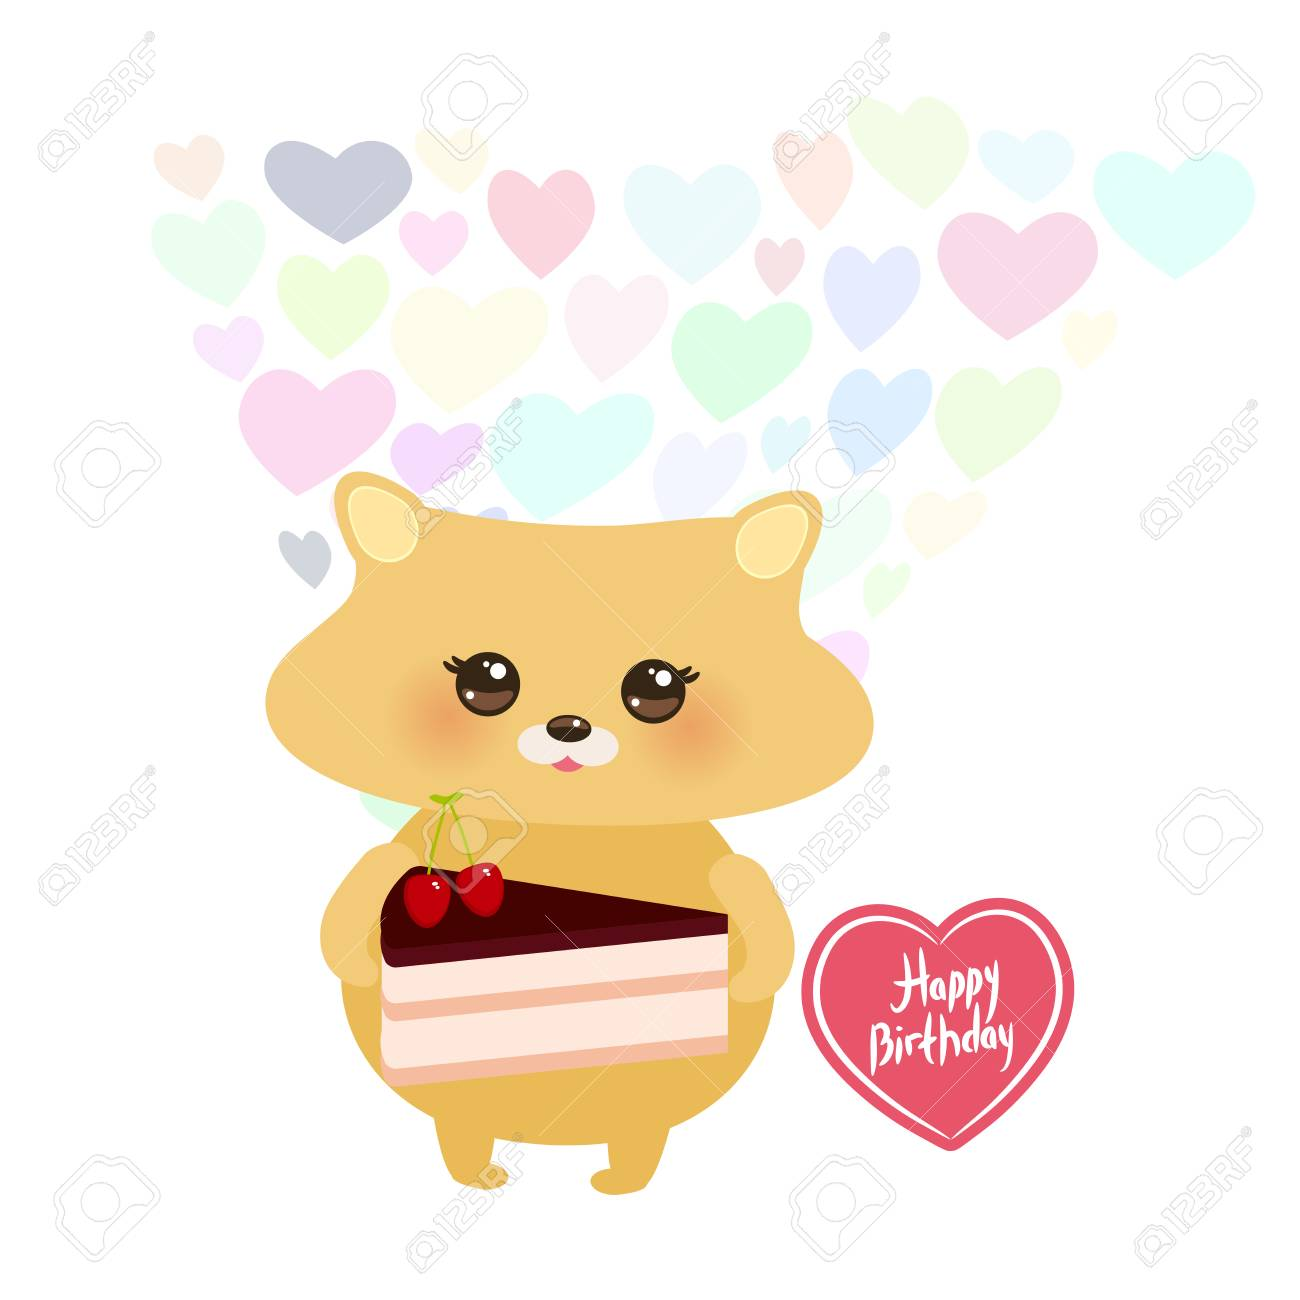 Happy Birthday Card Design Cute Hamster With Sweet Cake Decorated